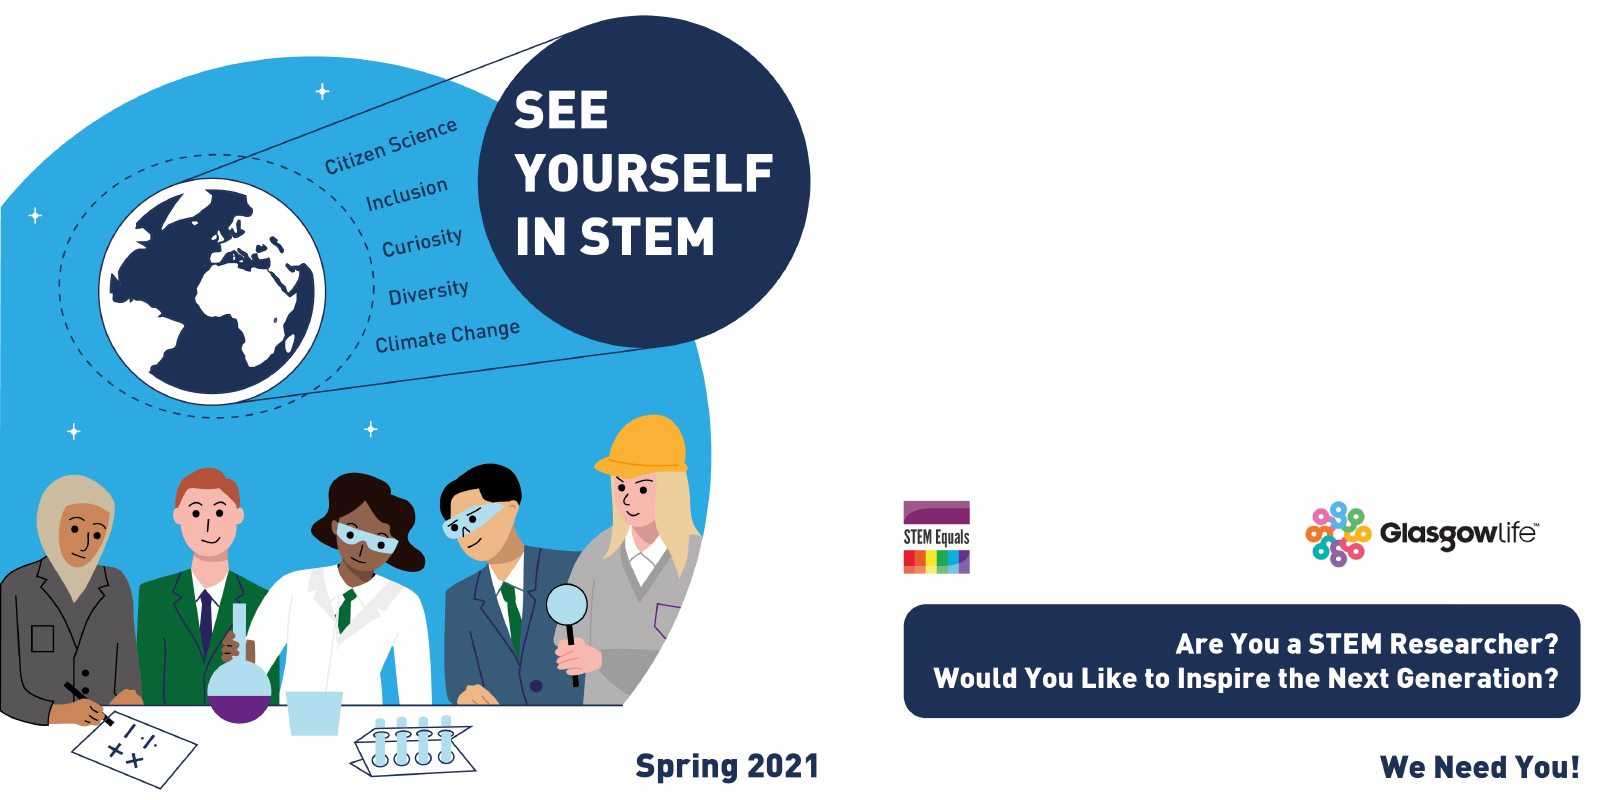 See Yourself in STEM. Are you a STEM Researcher? Would you Like to Inspire the Next Generation? We Need You!